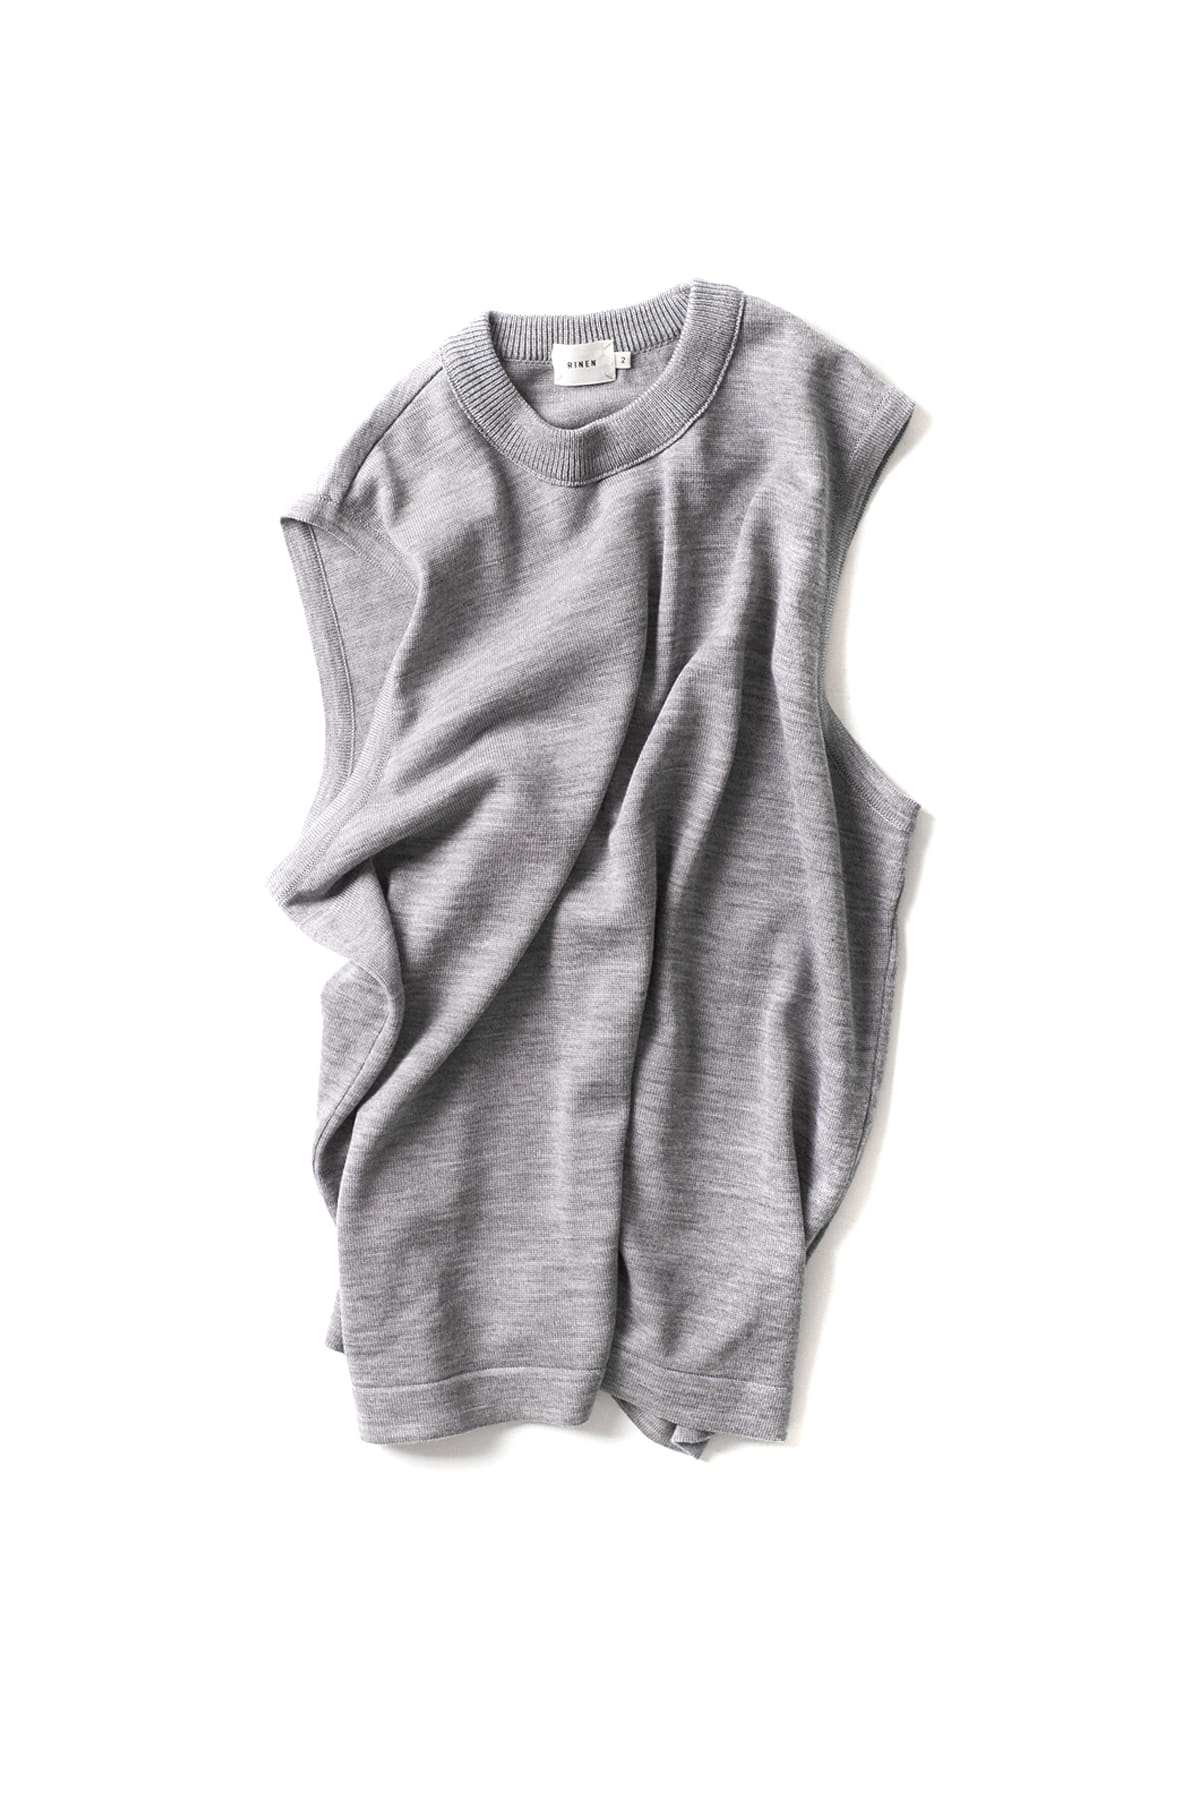 RINEN : Wool Knit Vest 13980 (Grey)